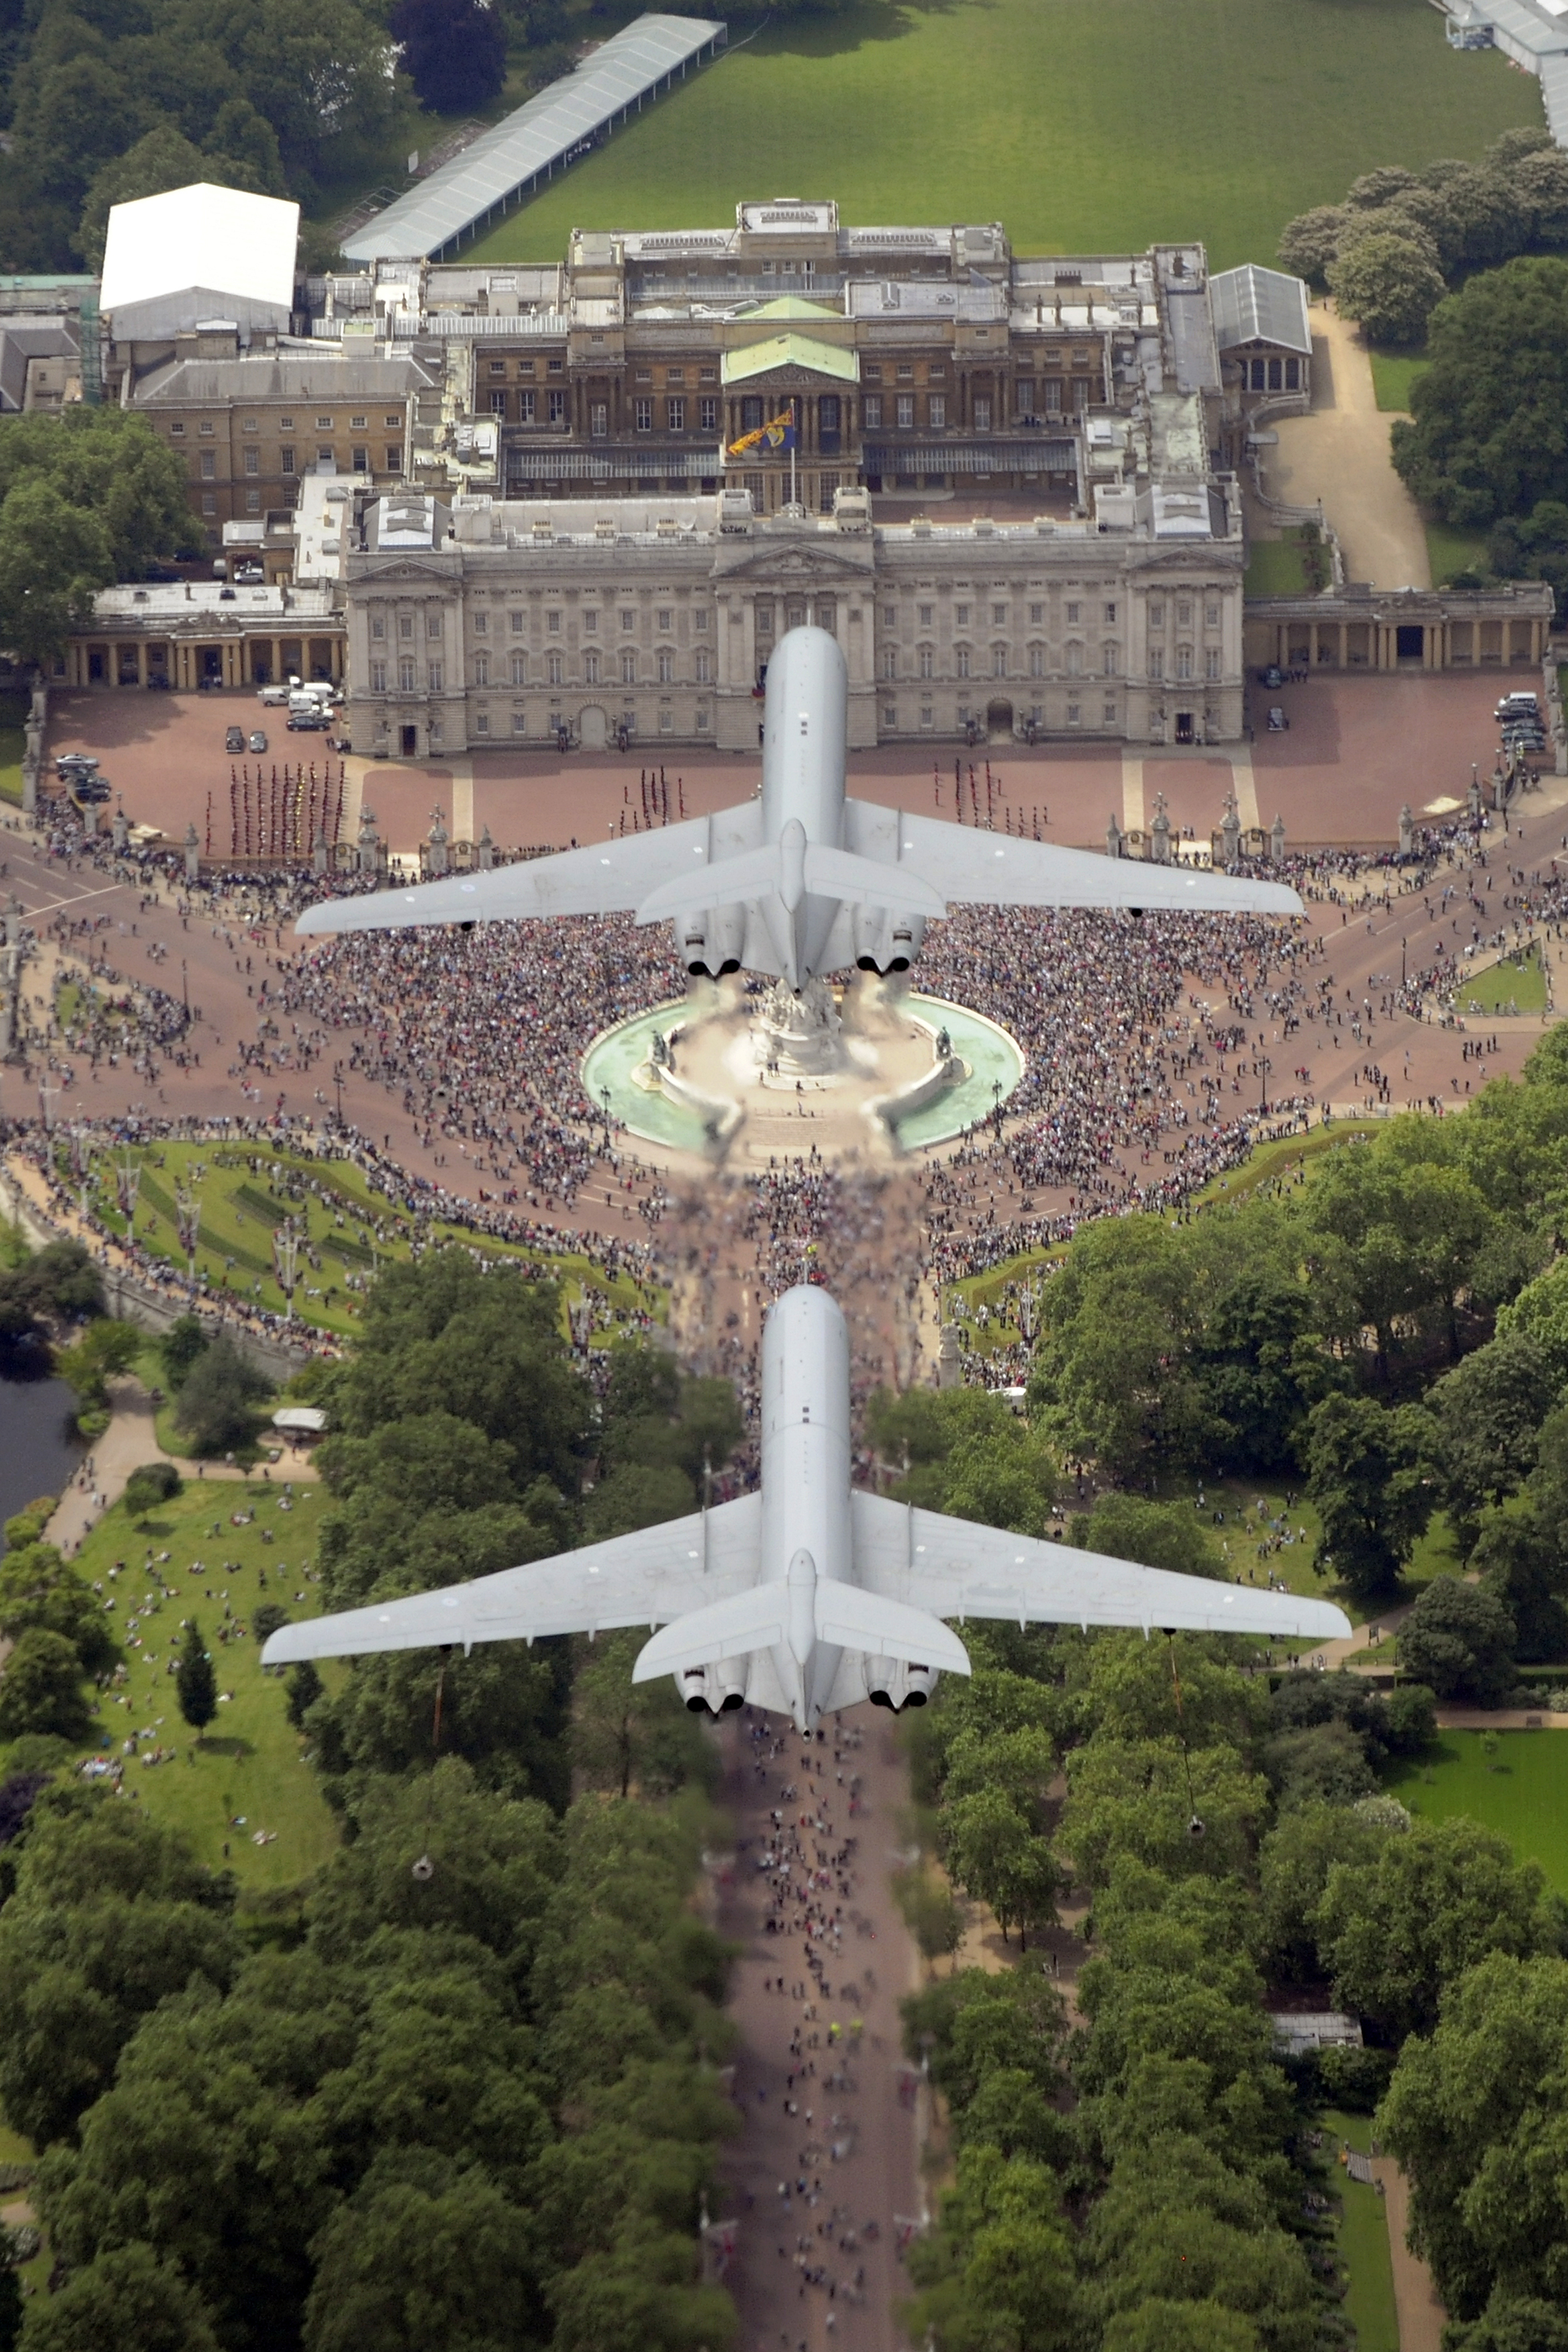 File:RAF VC-10 Aircraft Fly Over Buckingham Palace MOD ...